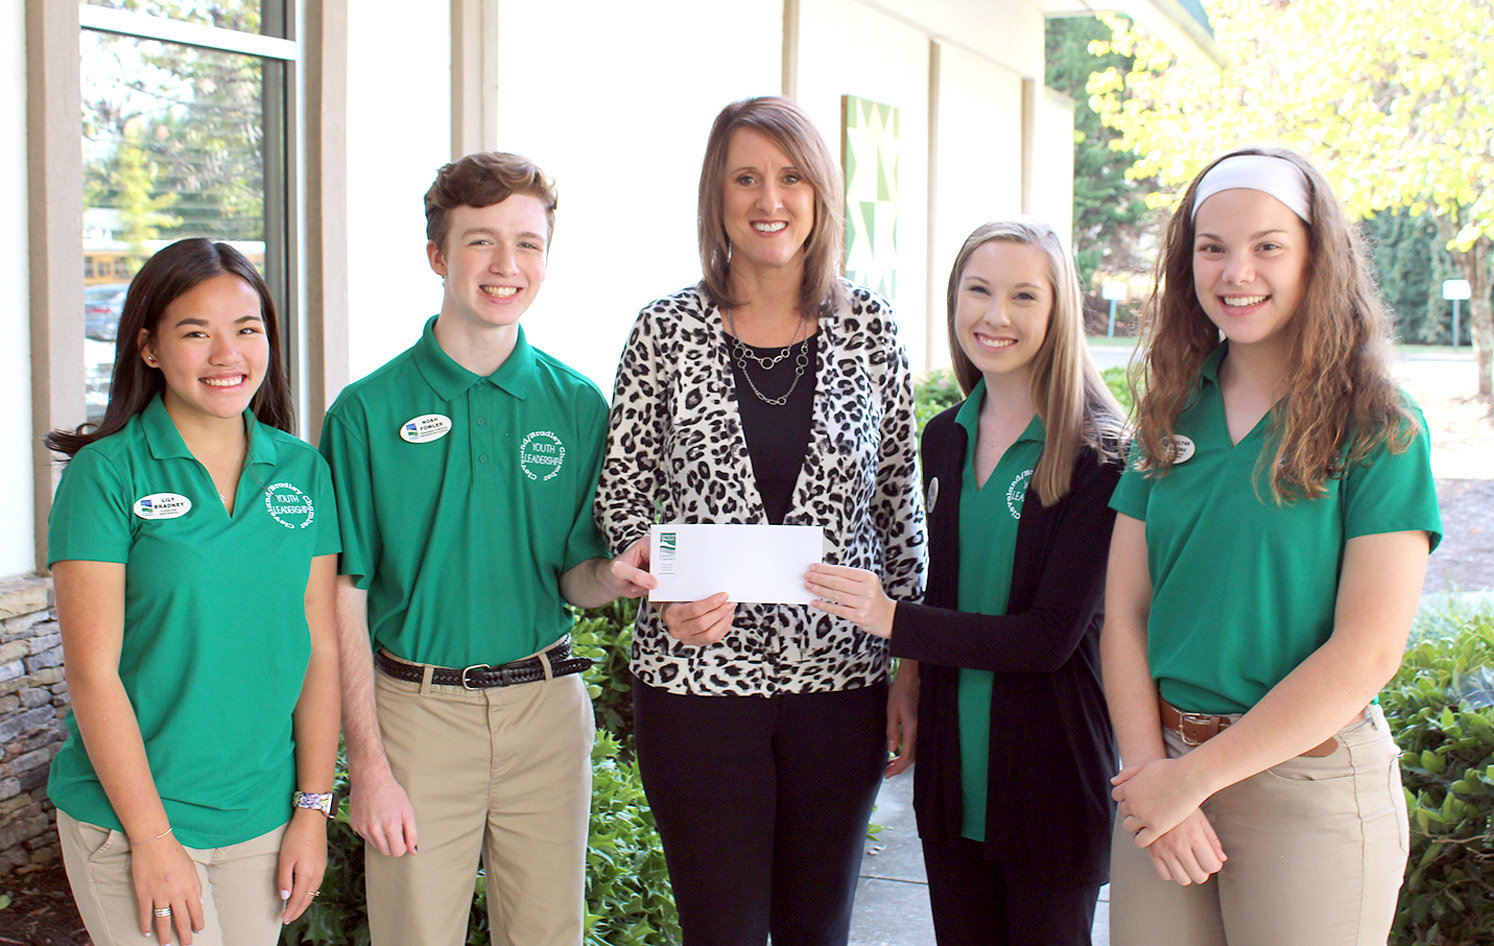 Student leaders present $1,687.78 to Tammy Johnson, Habitat for Humanity of Cleveland executive director, as part of their 2019-20 service project. Youth Leader student representatives shown, from left, are: Lily Bradney, Cleveland High School; Noah Fowler, Tennessee Christian Preparatory School; Erica Yates, Bradley Central High School; and Ashlynn Akiona, Walker Valley High School.